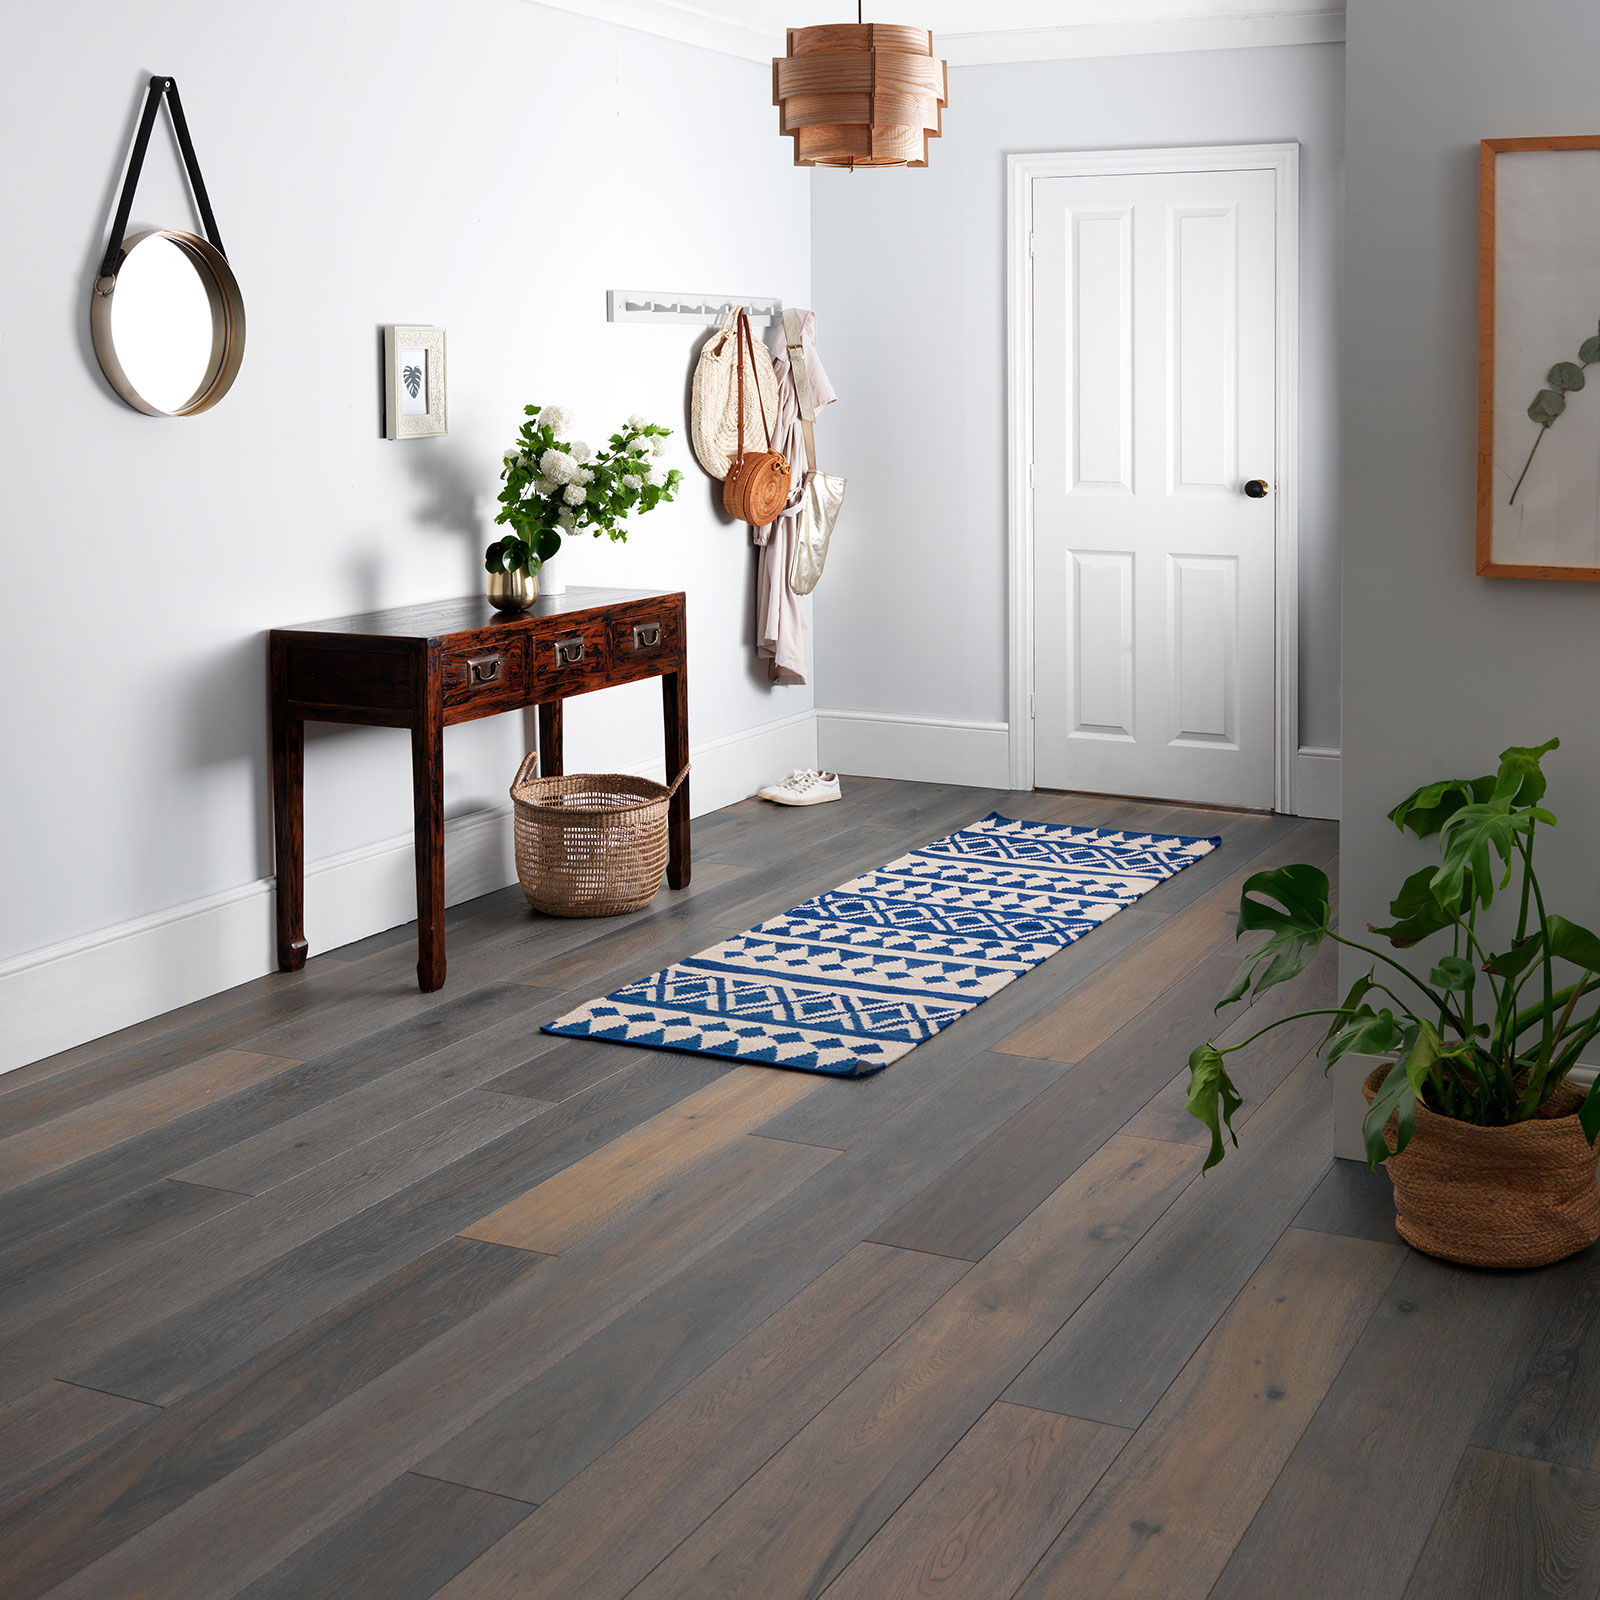 Grey Flooring Ideas: Why A Grey Floor Provides A Great Base For